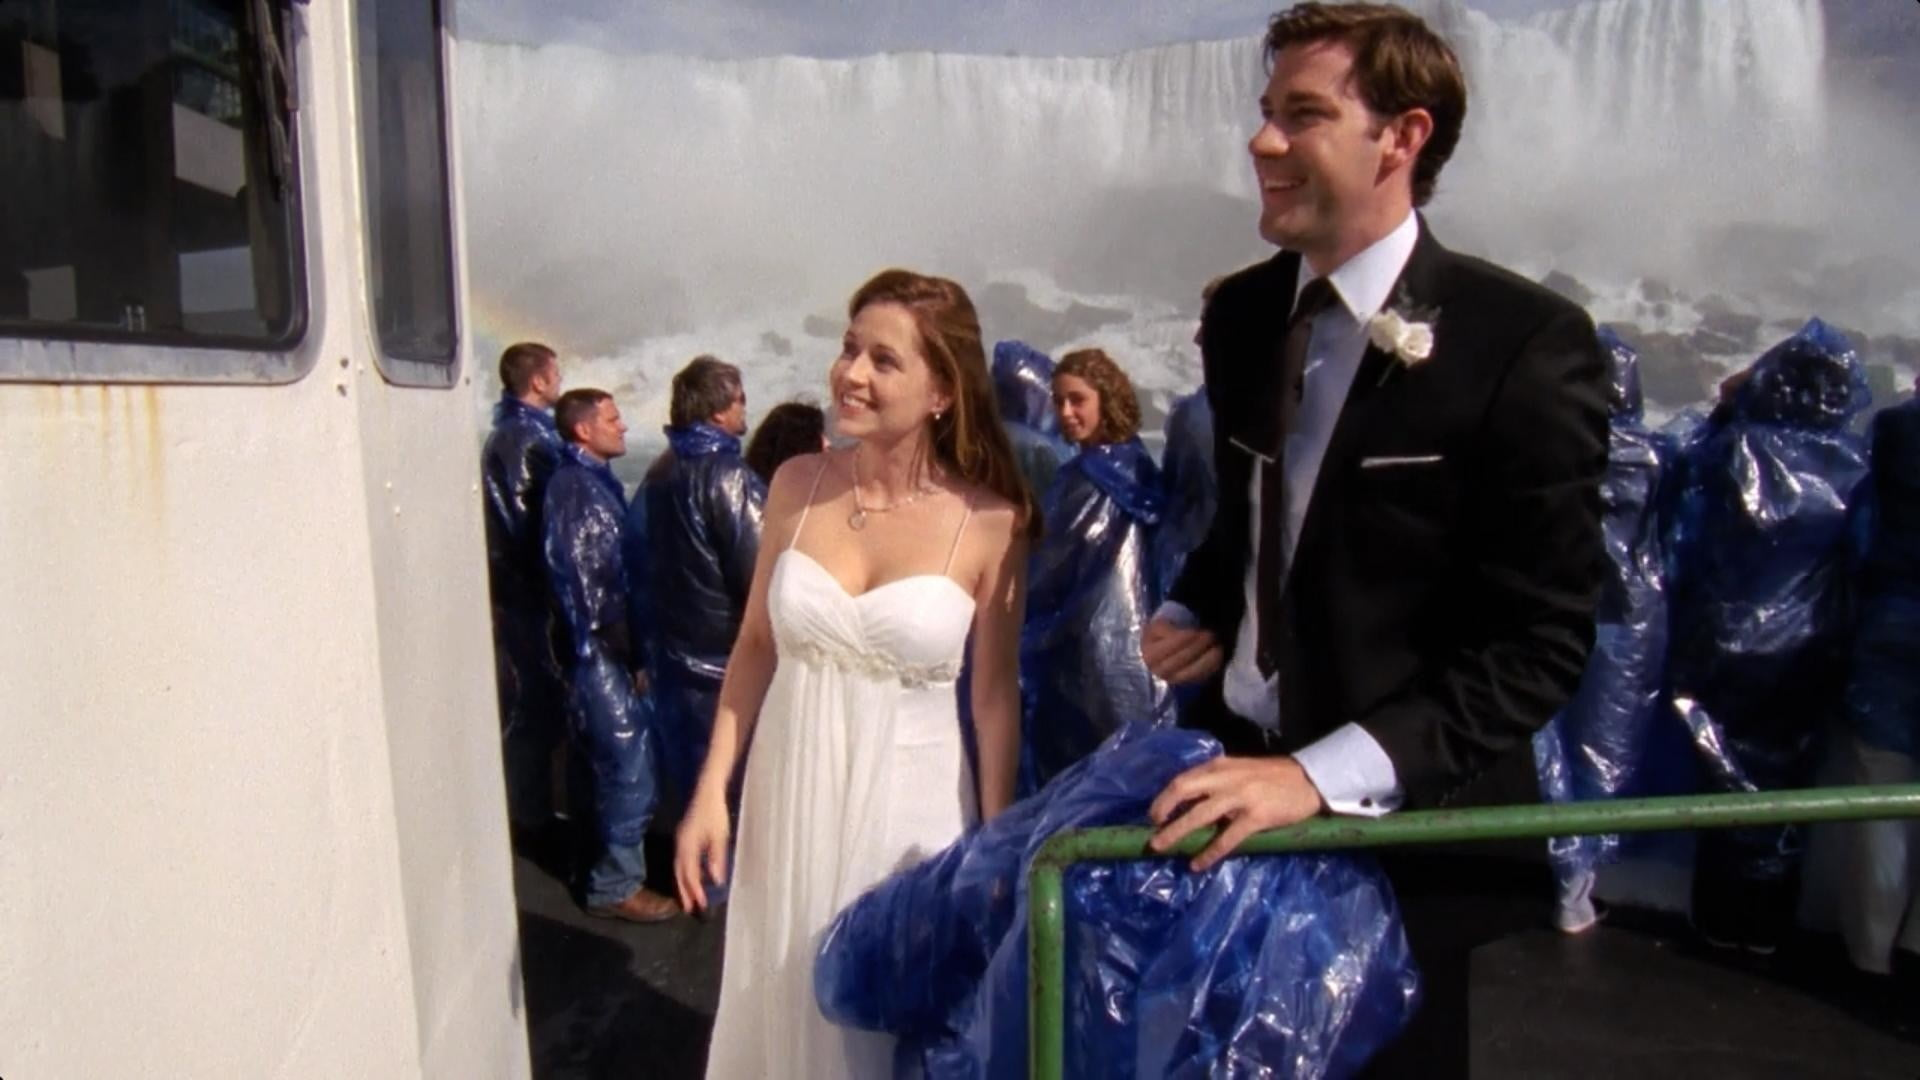 Jim And Pam Wedding Episode.The Best Office Episodes Of All Time Digital Trends